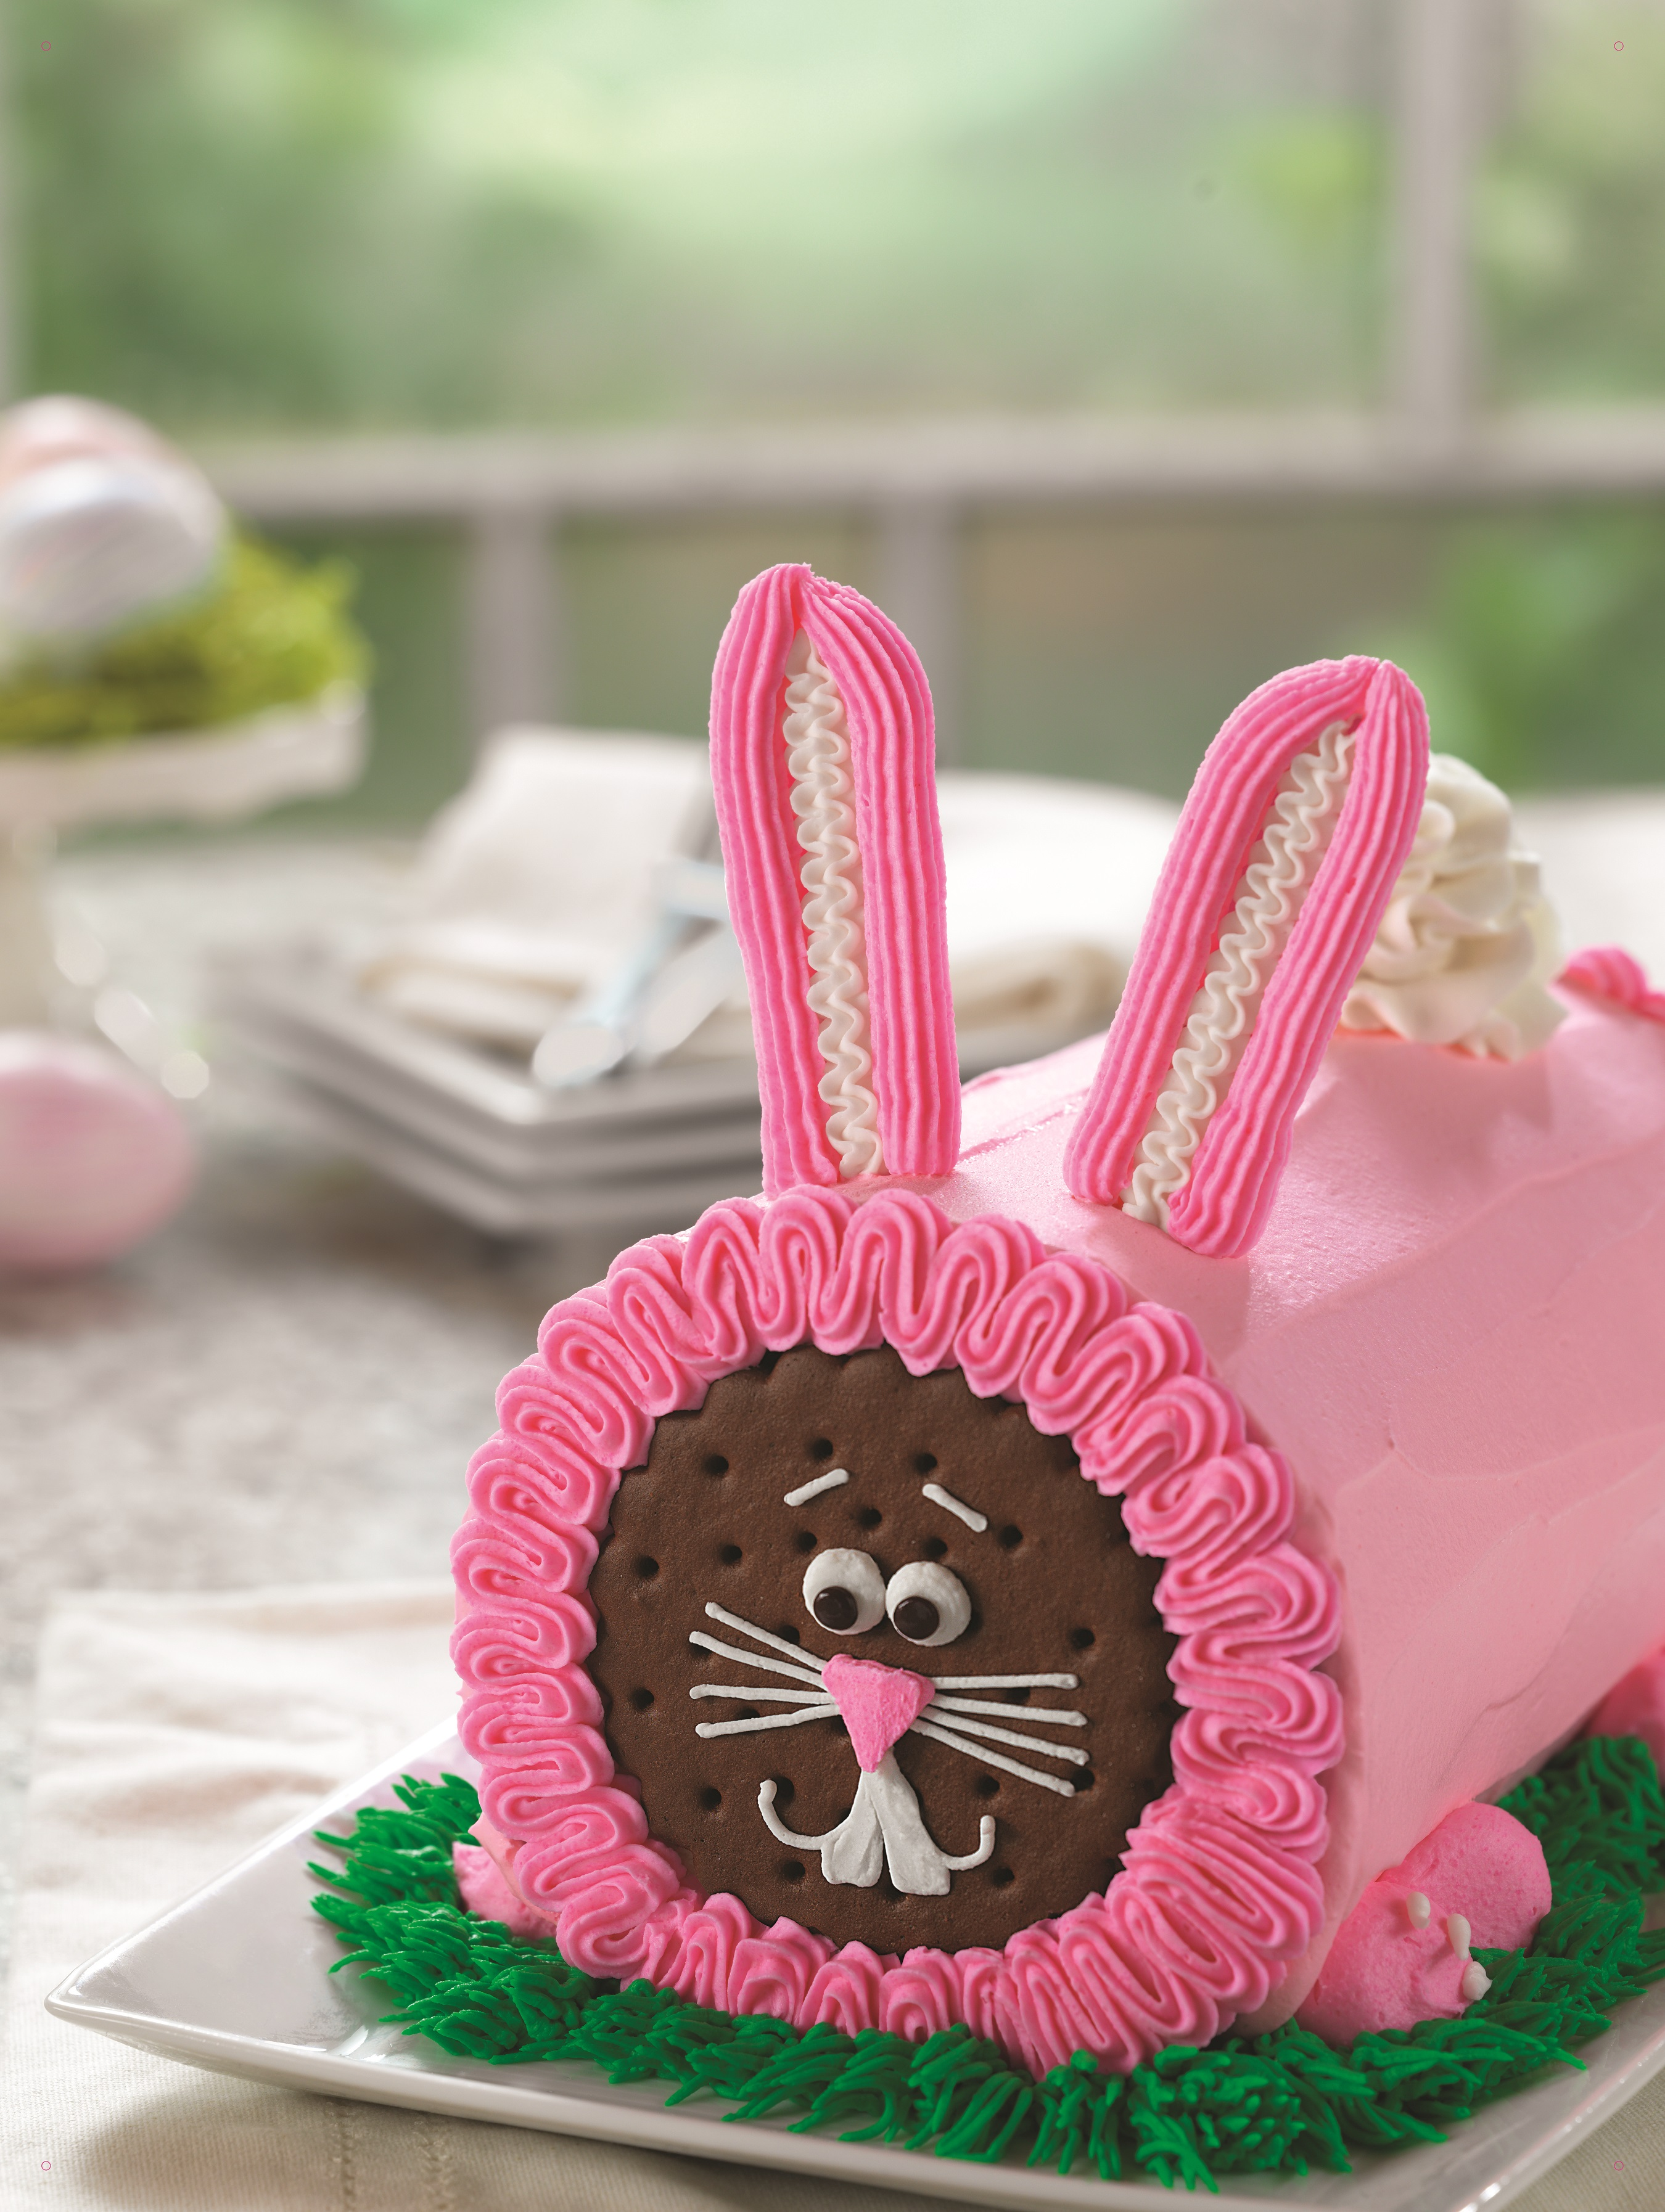 Baskin Robbins Springs Into The Season With New April